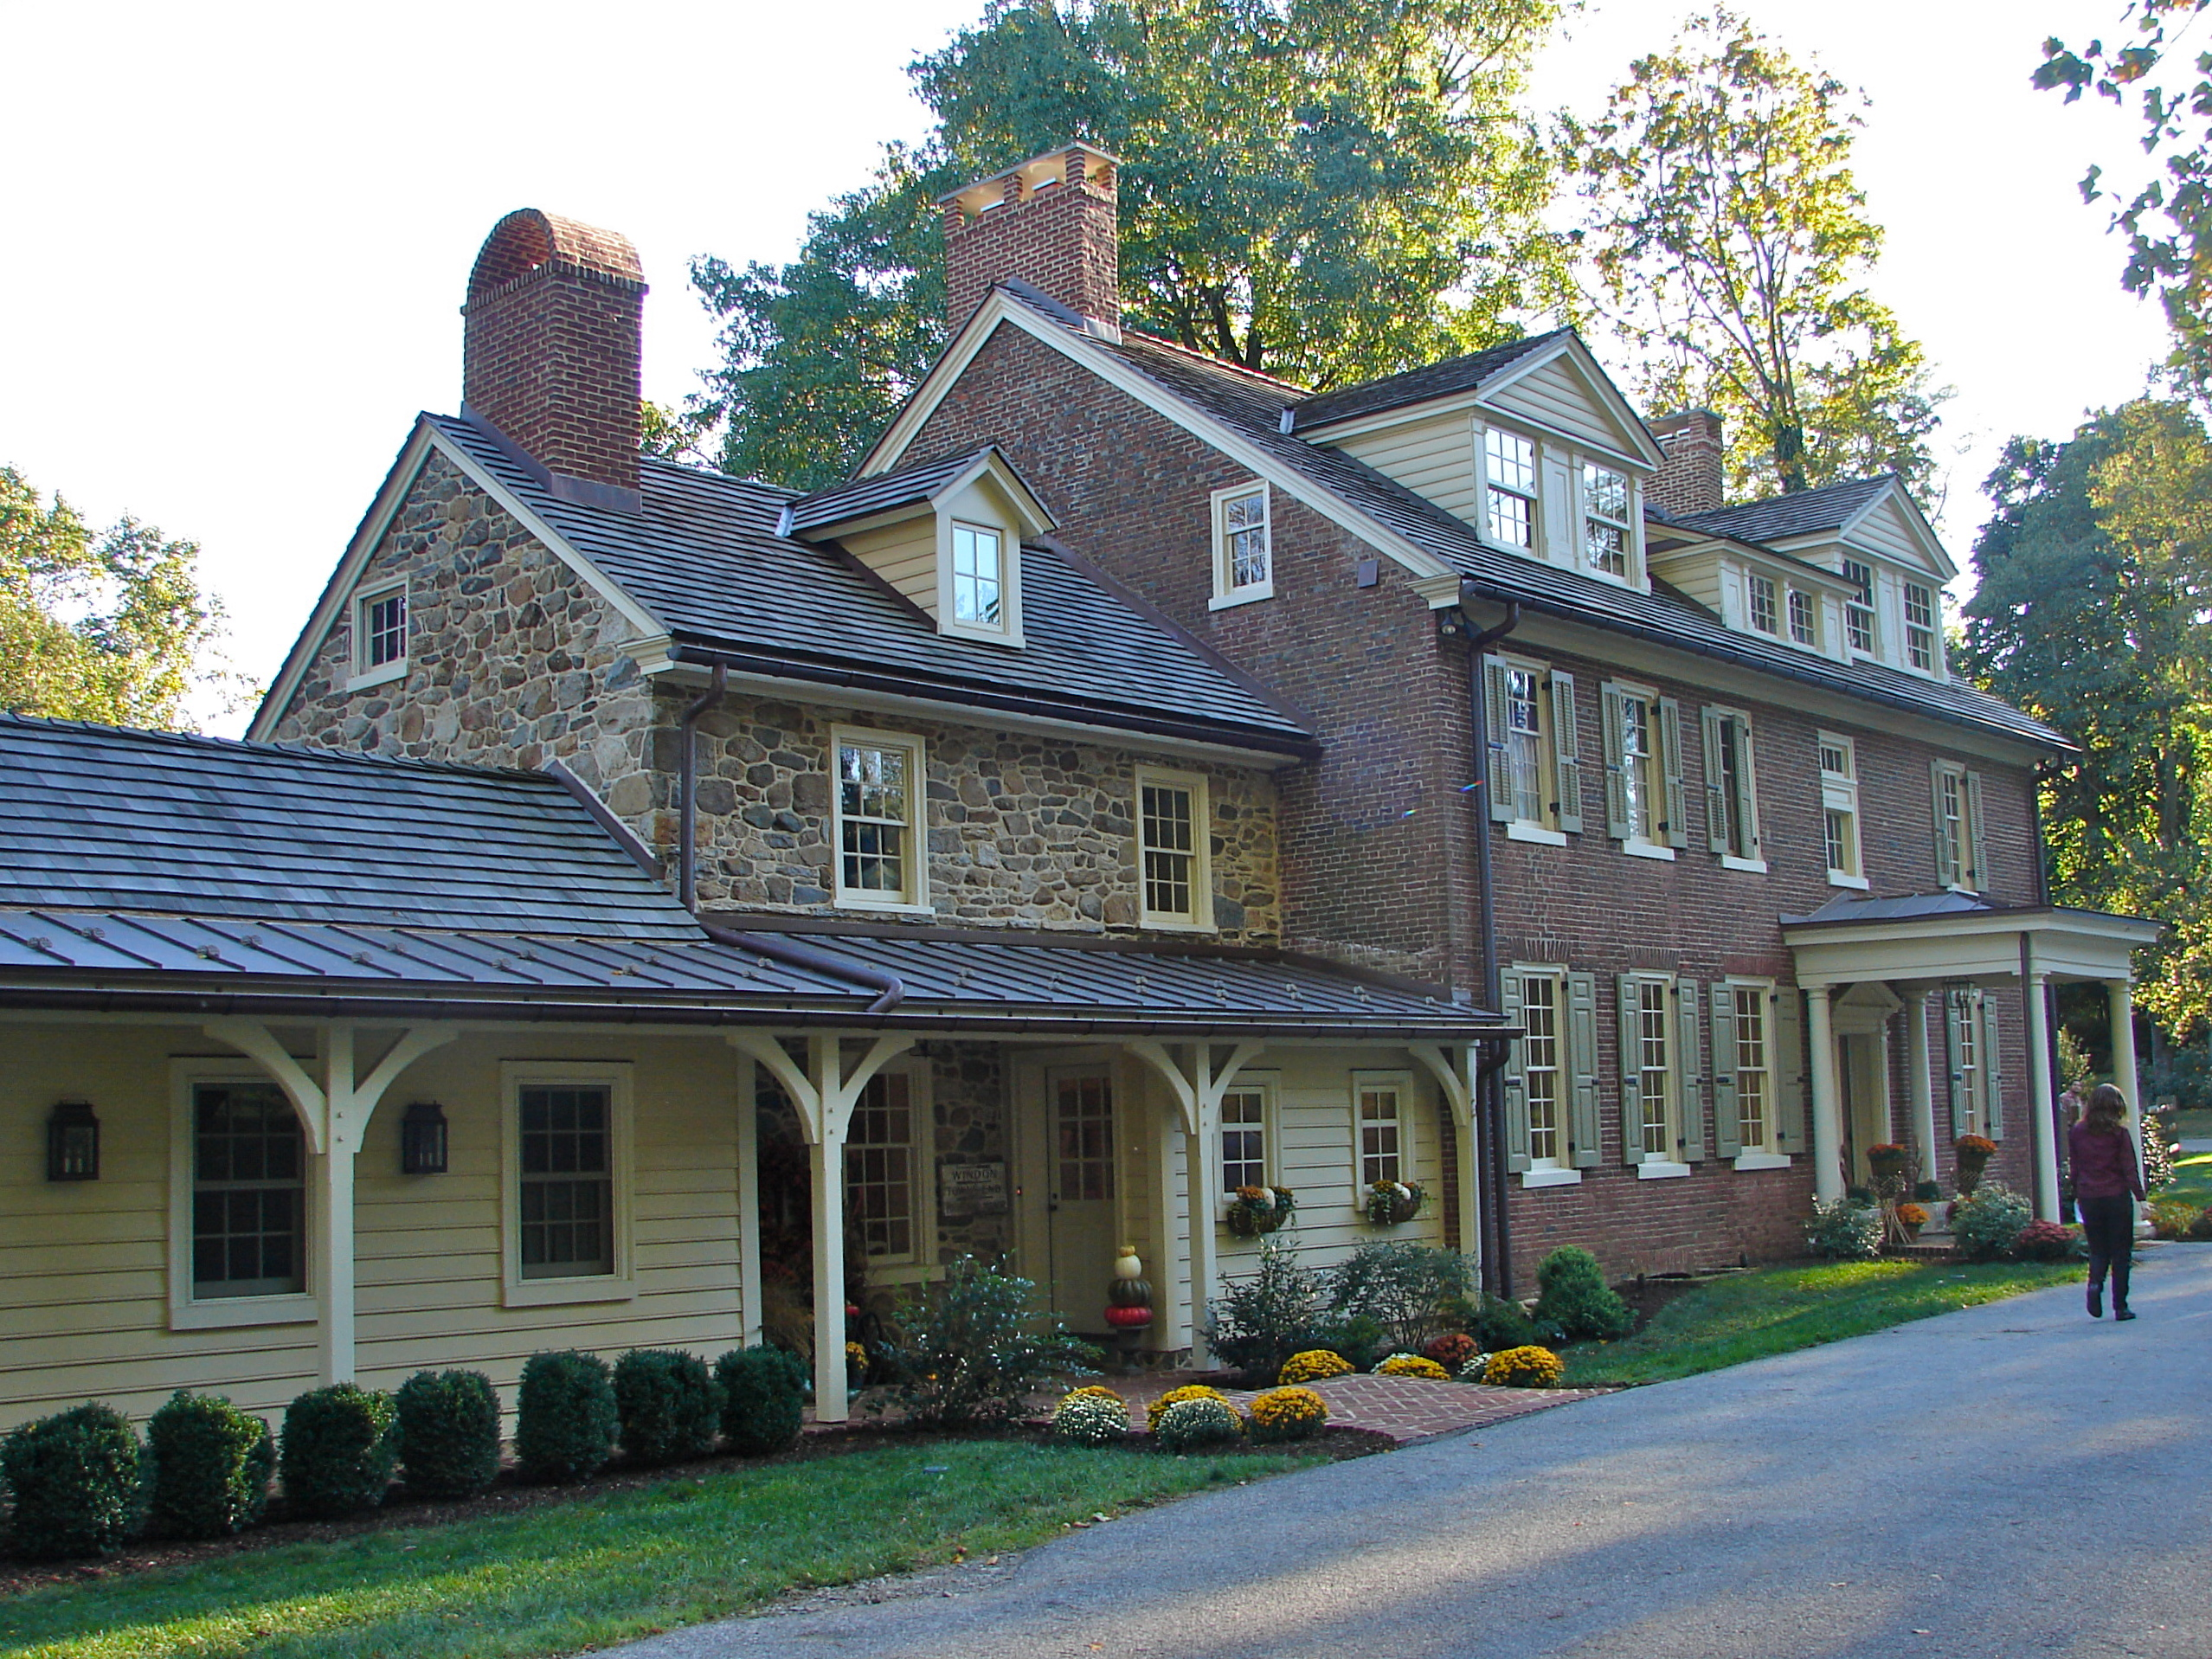 File:Towns End West Chester PA.JPG - Wikimedia Commons